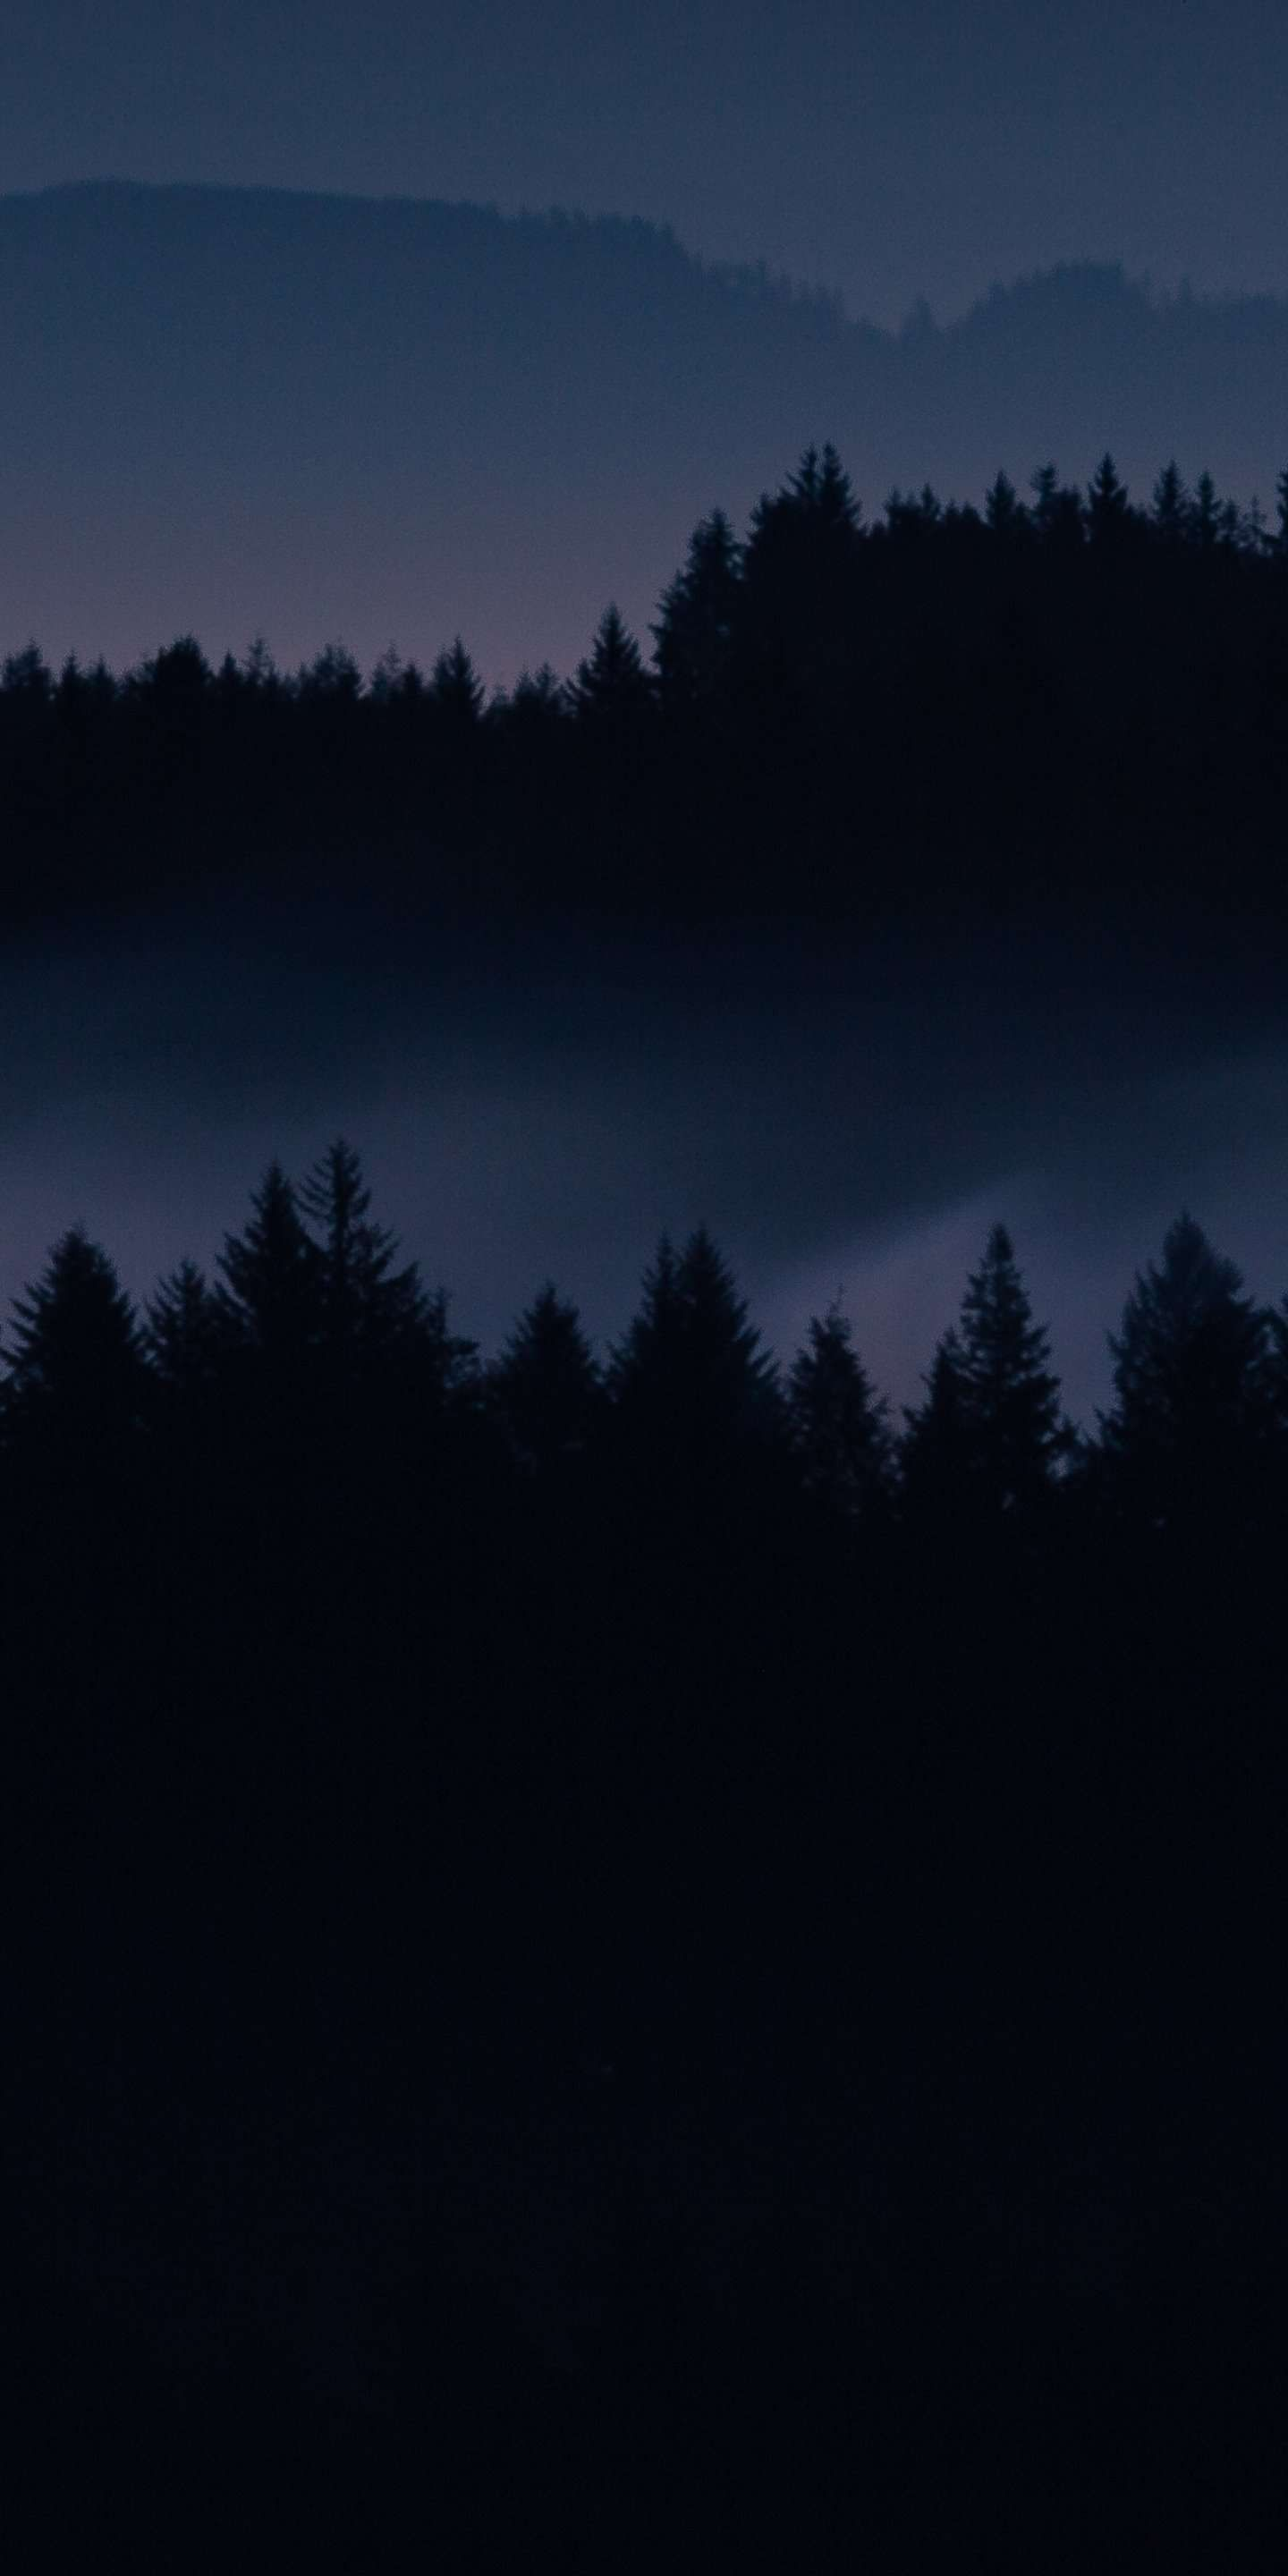 Dark Forest Iphone Wallpapers Top Free Dark Forest Iphone Backgrounds Wallpaperaccess